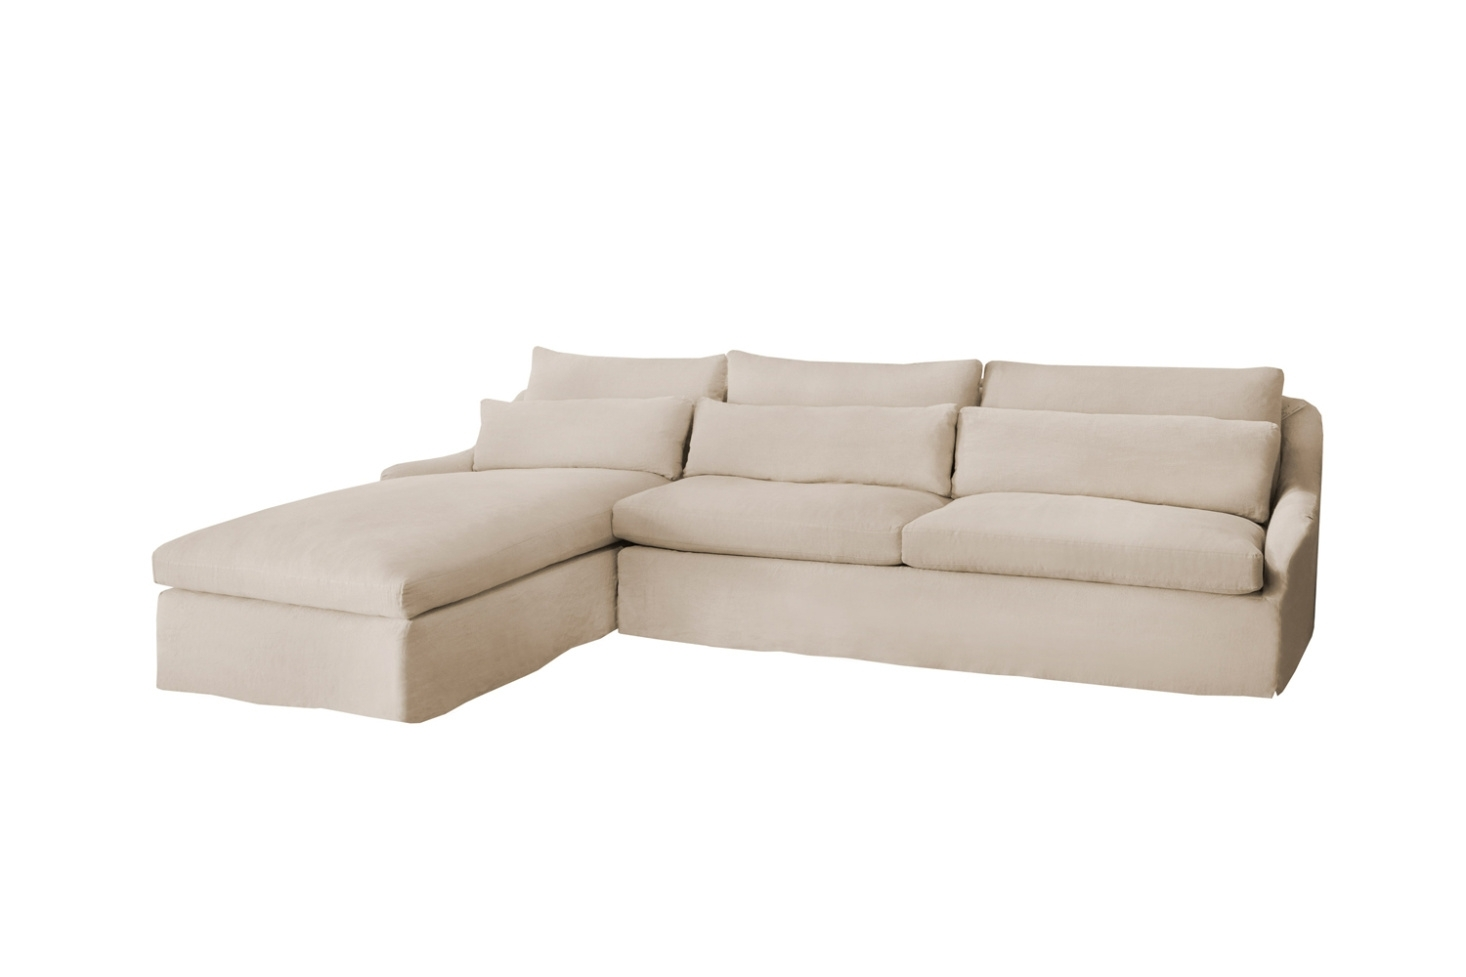 10 Easy Pieces: Sectional Chaise Sofas - Remodelista intended for Elm Grande Ii 2 Piece Sectionals